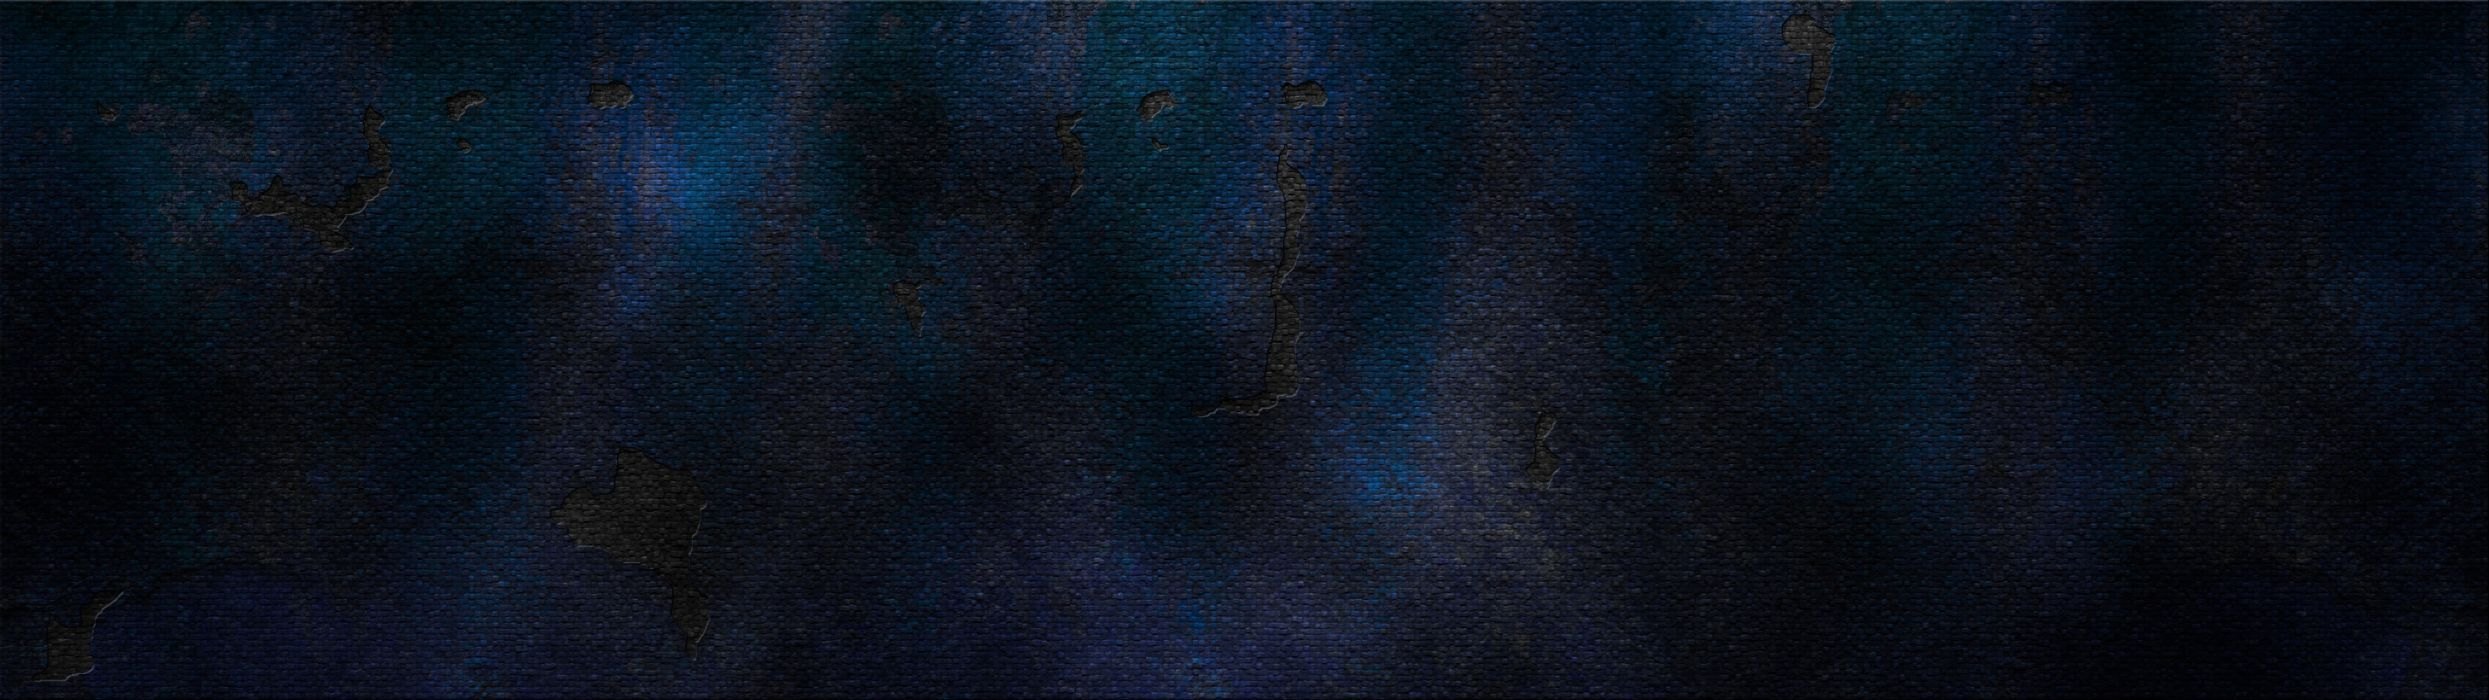 Rusty Grinded Background 1 (3840x1080) wallpaper